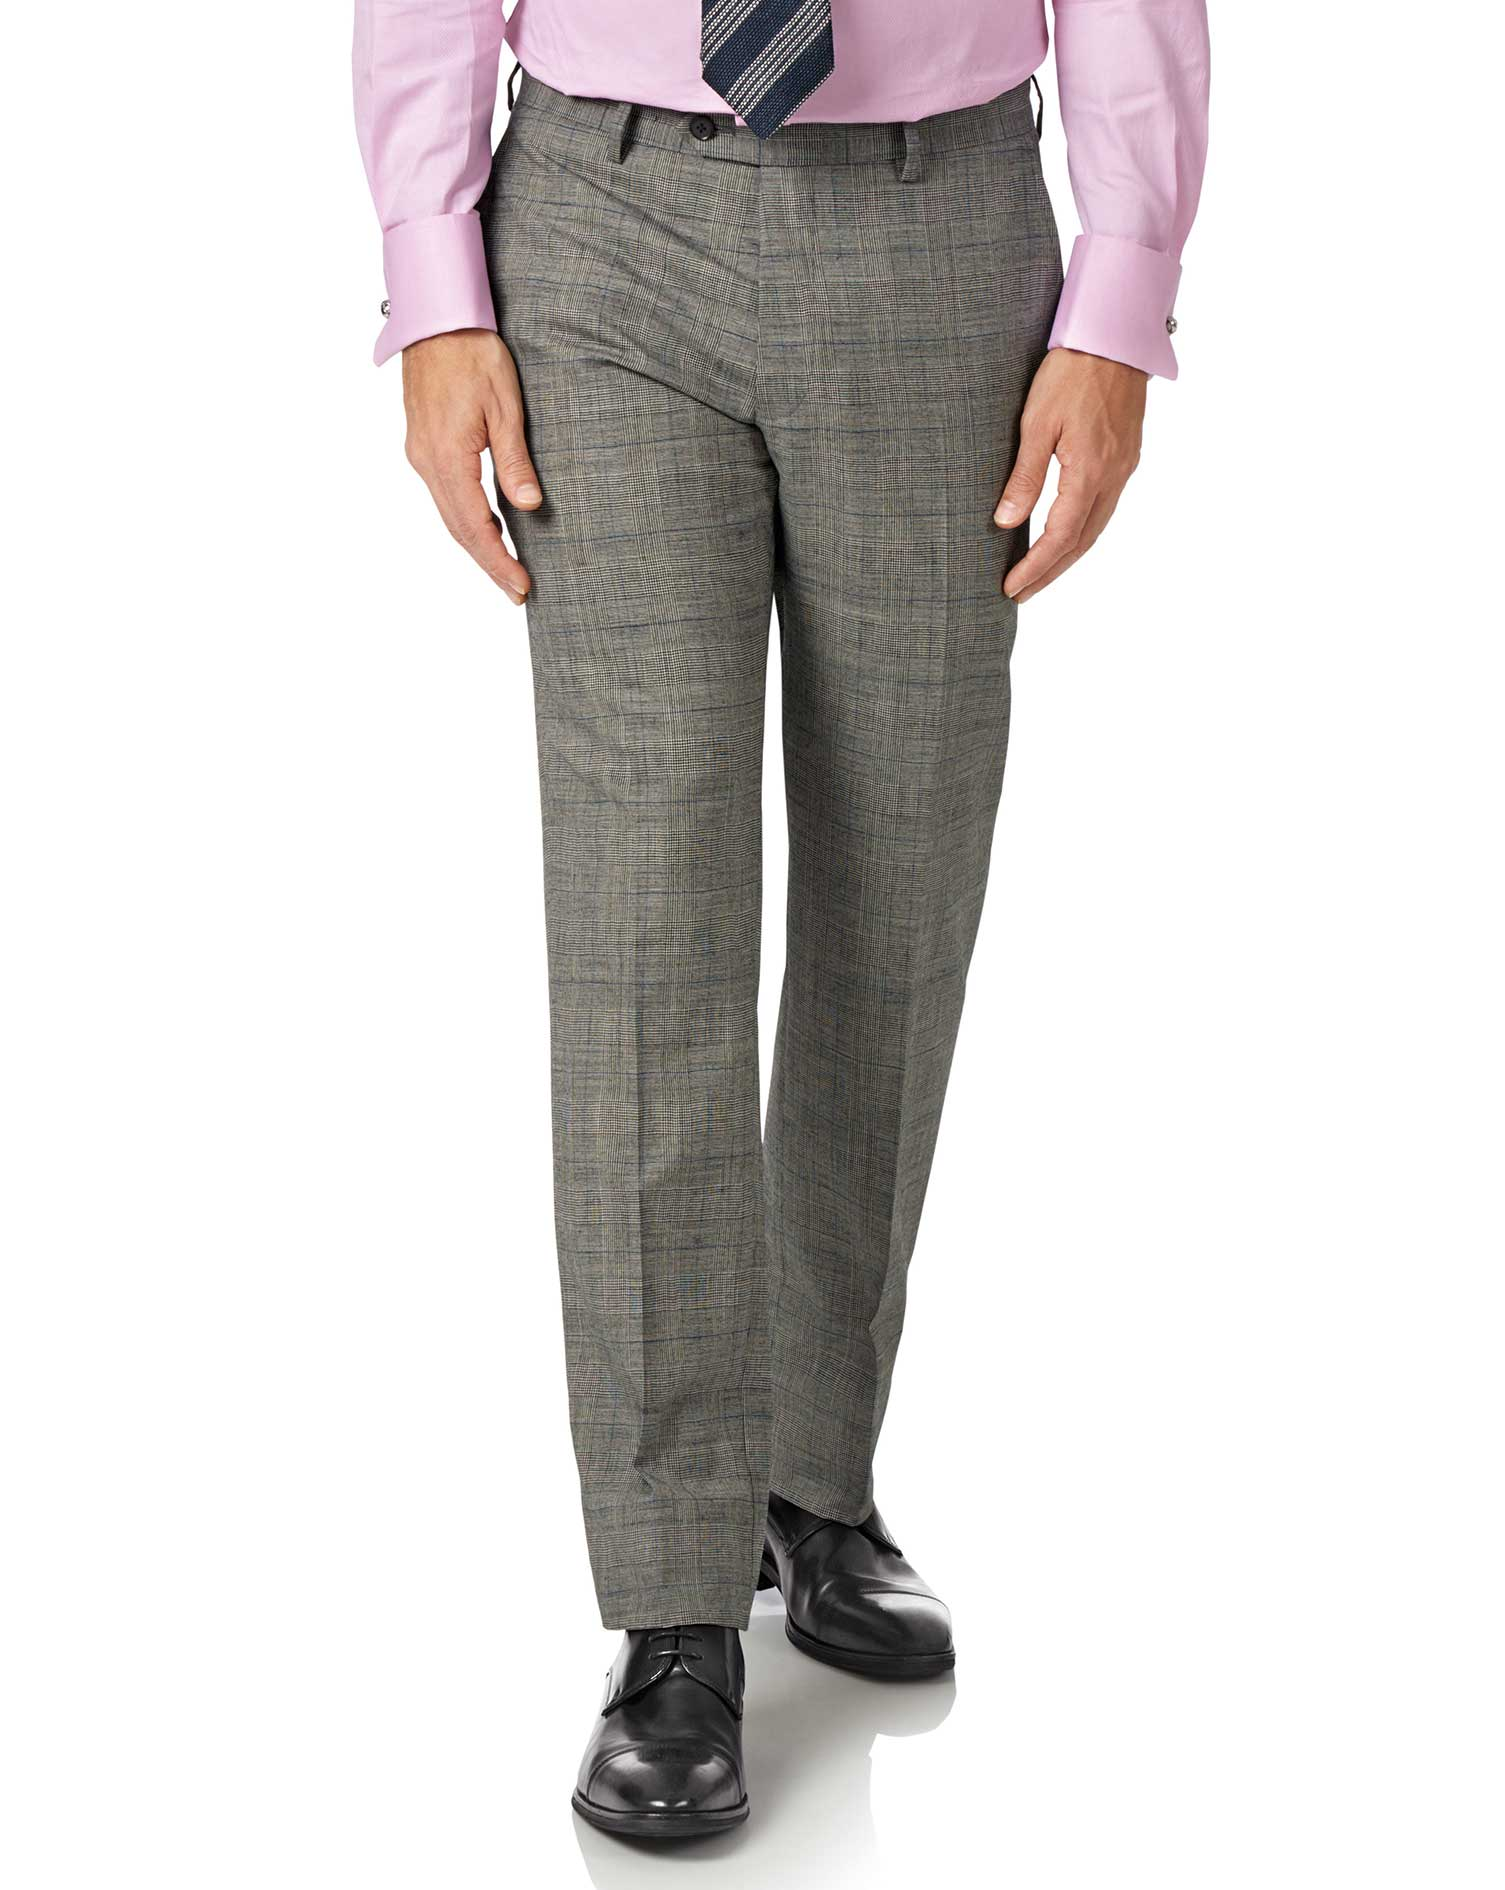 Grey Slim Fit Panama Prince Of Wales Check Business Suit Trousers Size W36 L32 by Charles Tyrwhitt